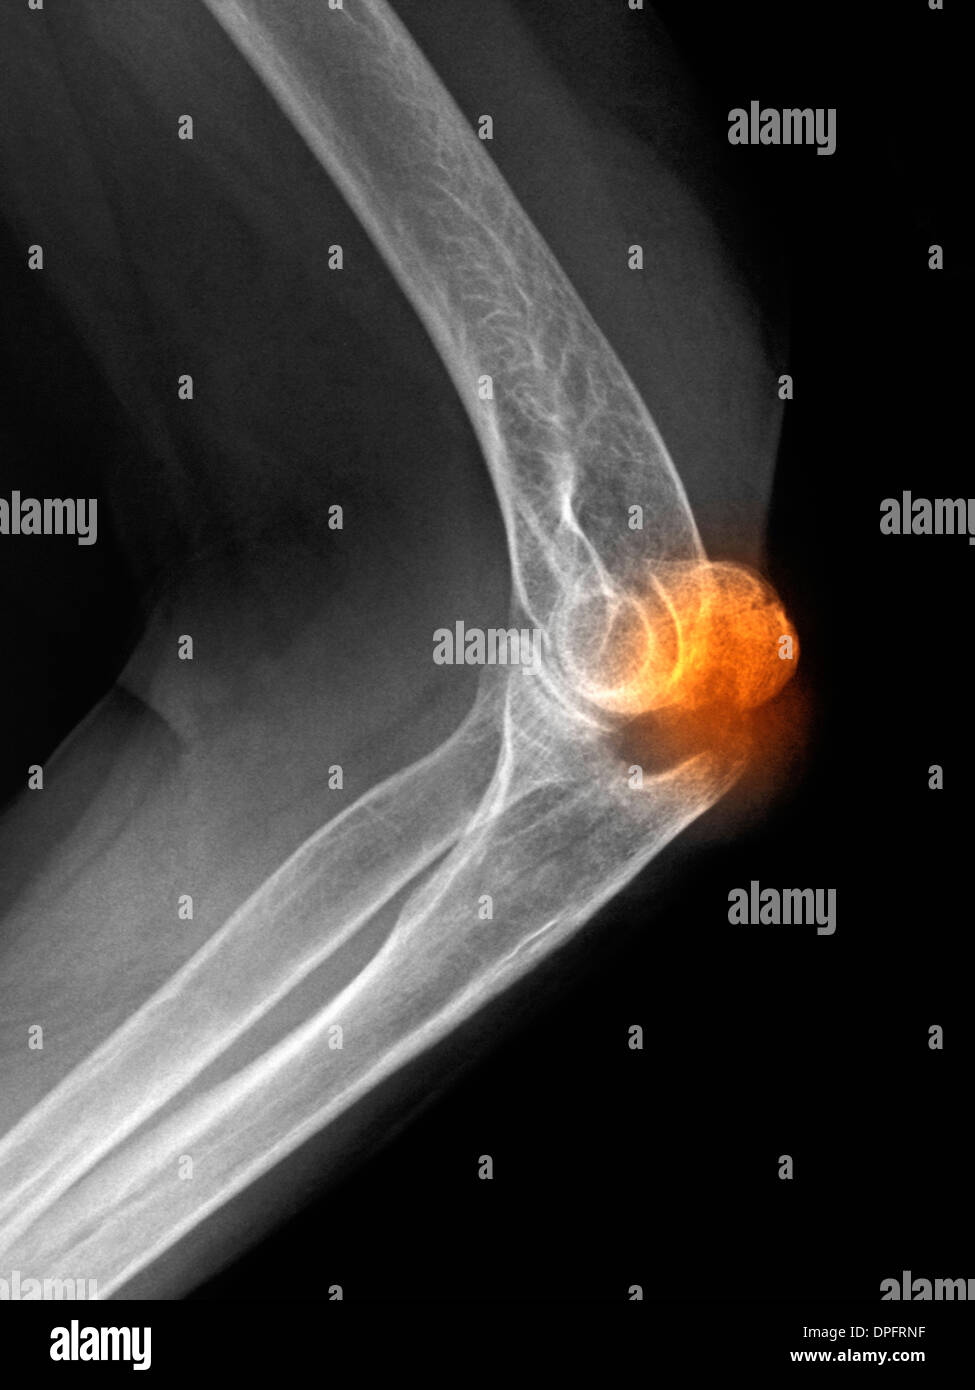 x-ray of an olecranon fracture - Stock Image